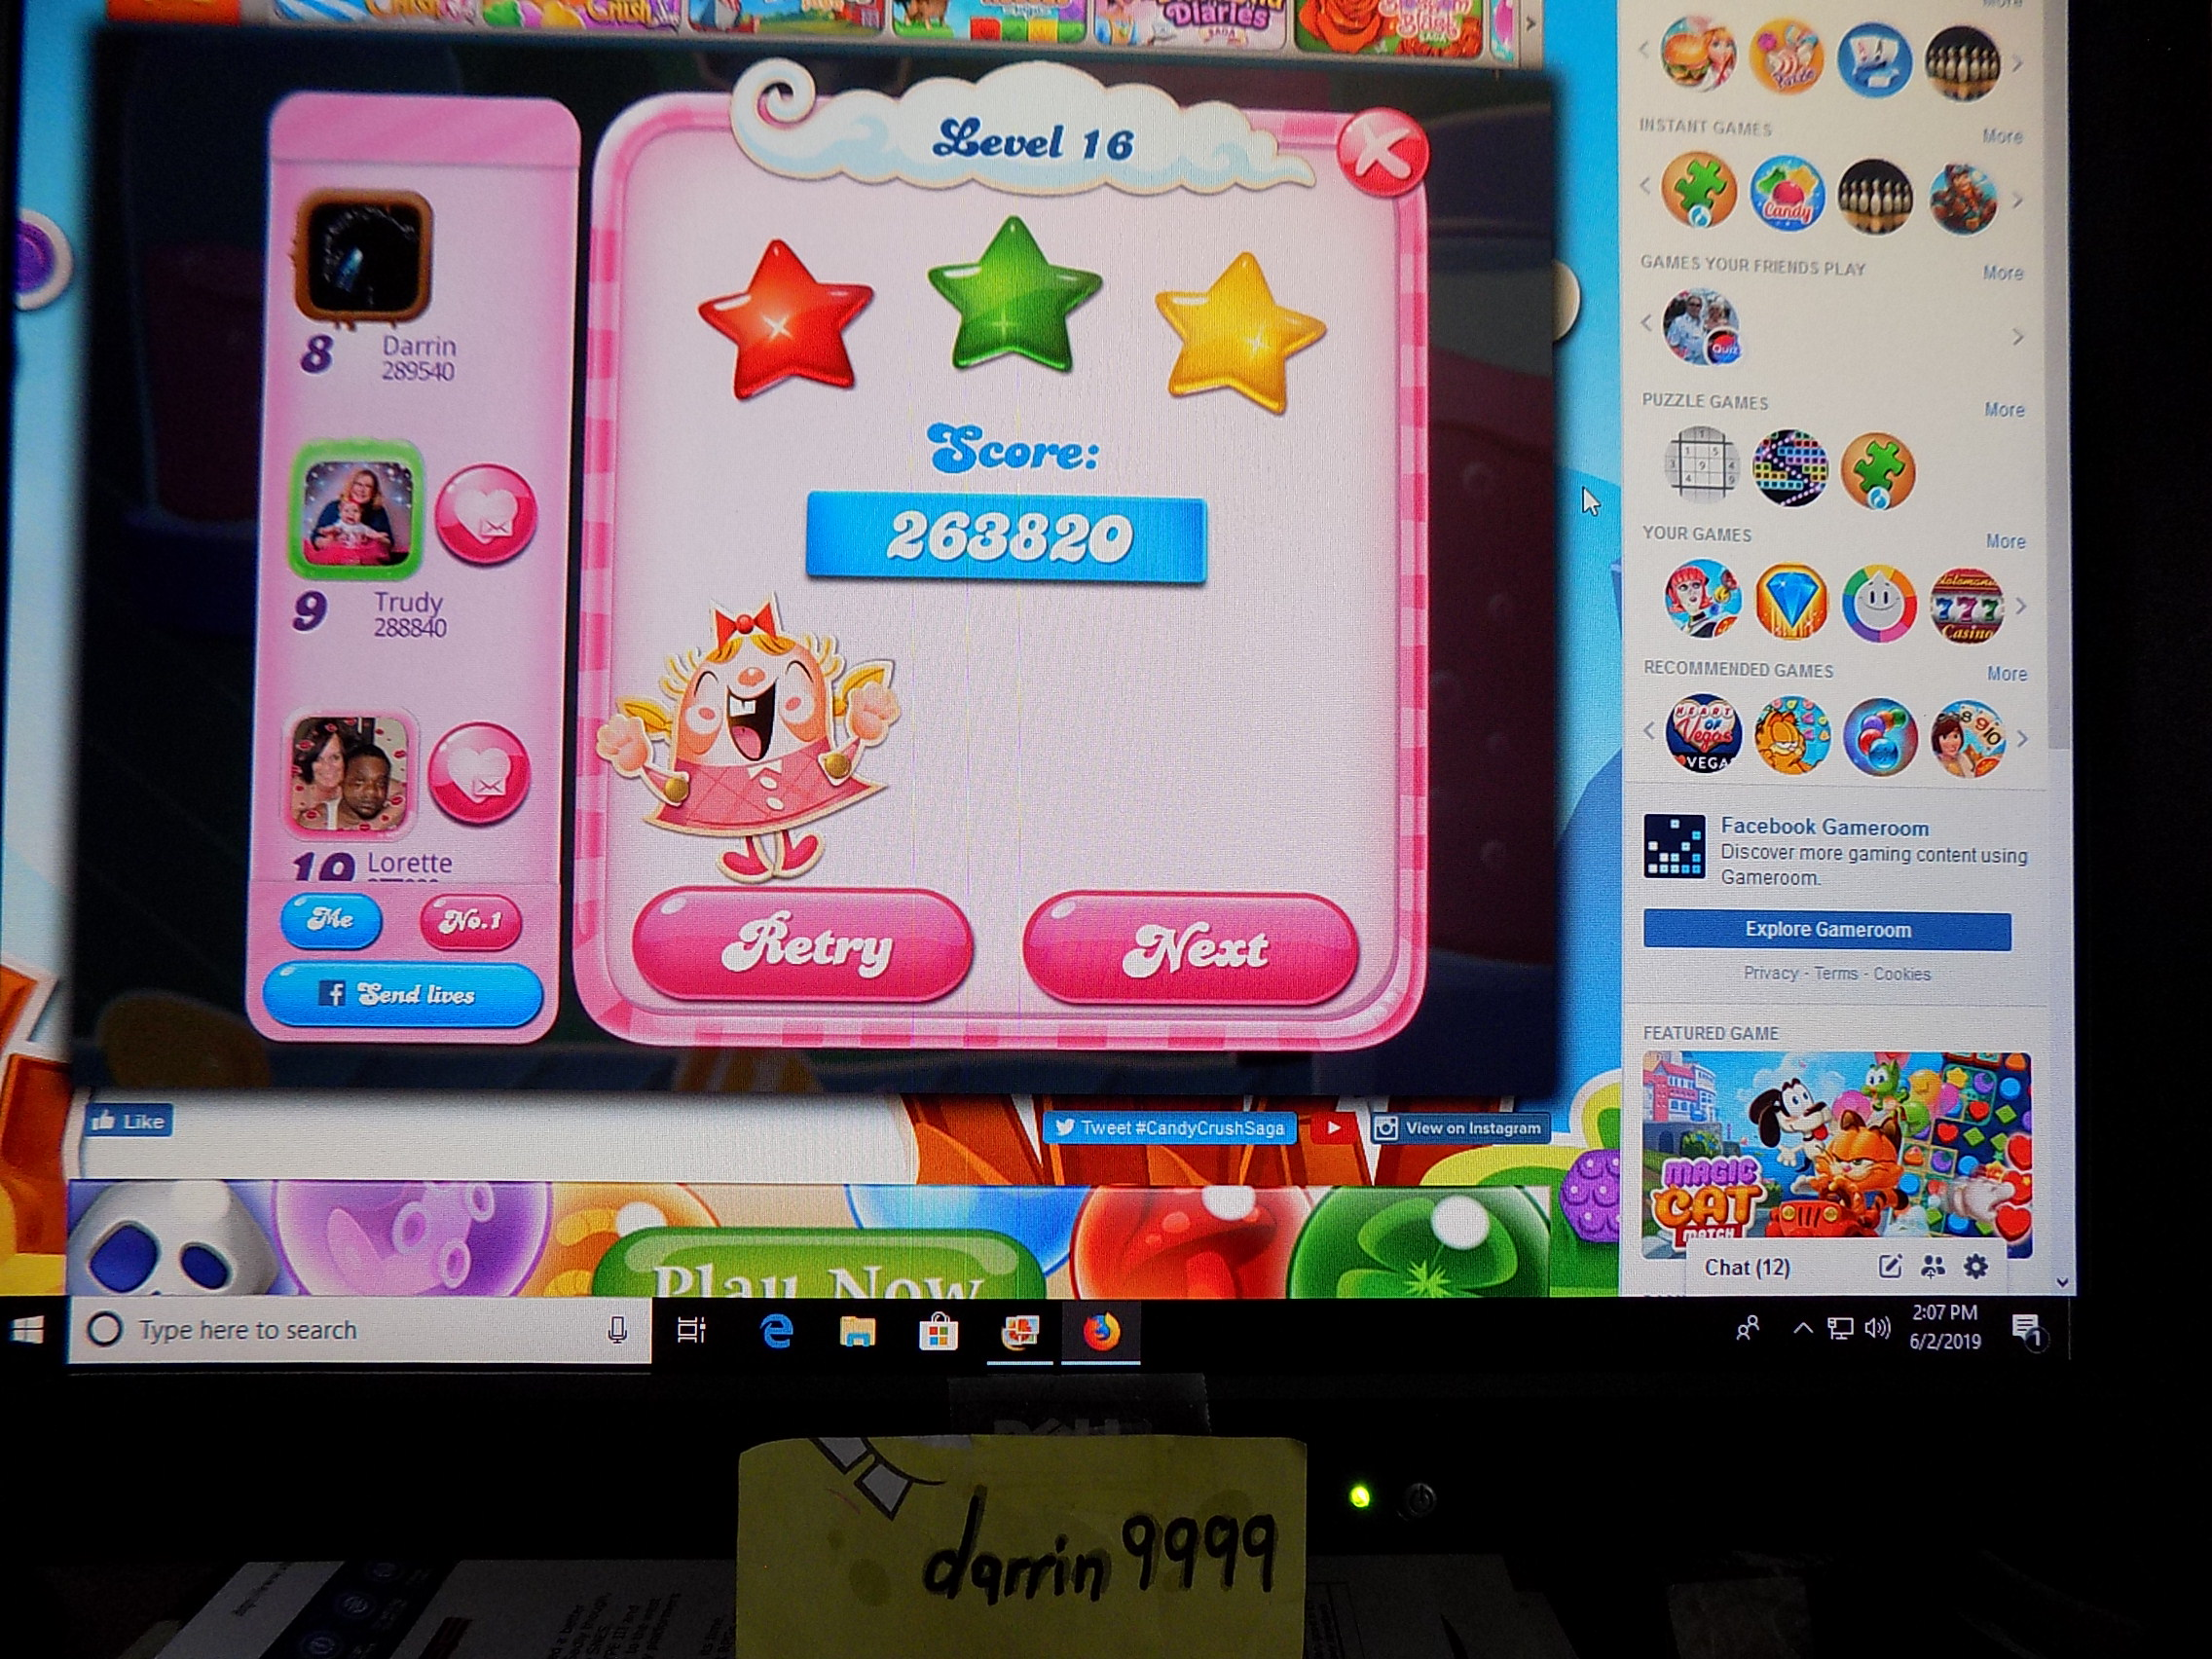 darrin9999: Candy Crush Saga: Level 016 (Web) 263,820 points on 2019-06-02 13:18:37